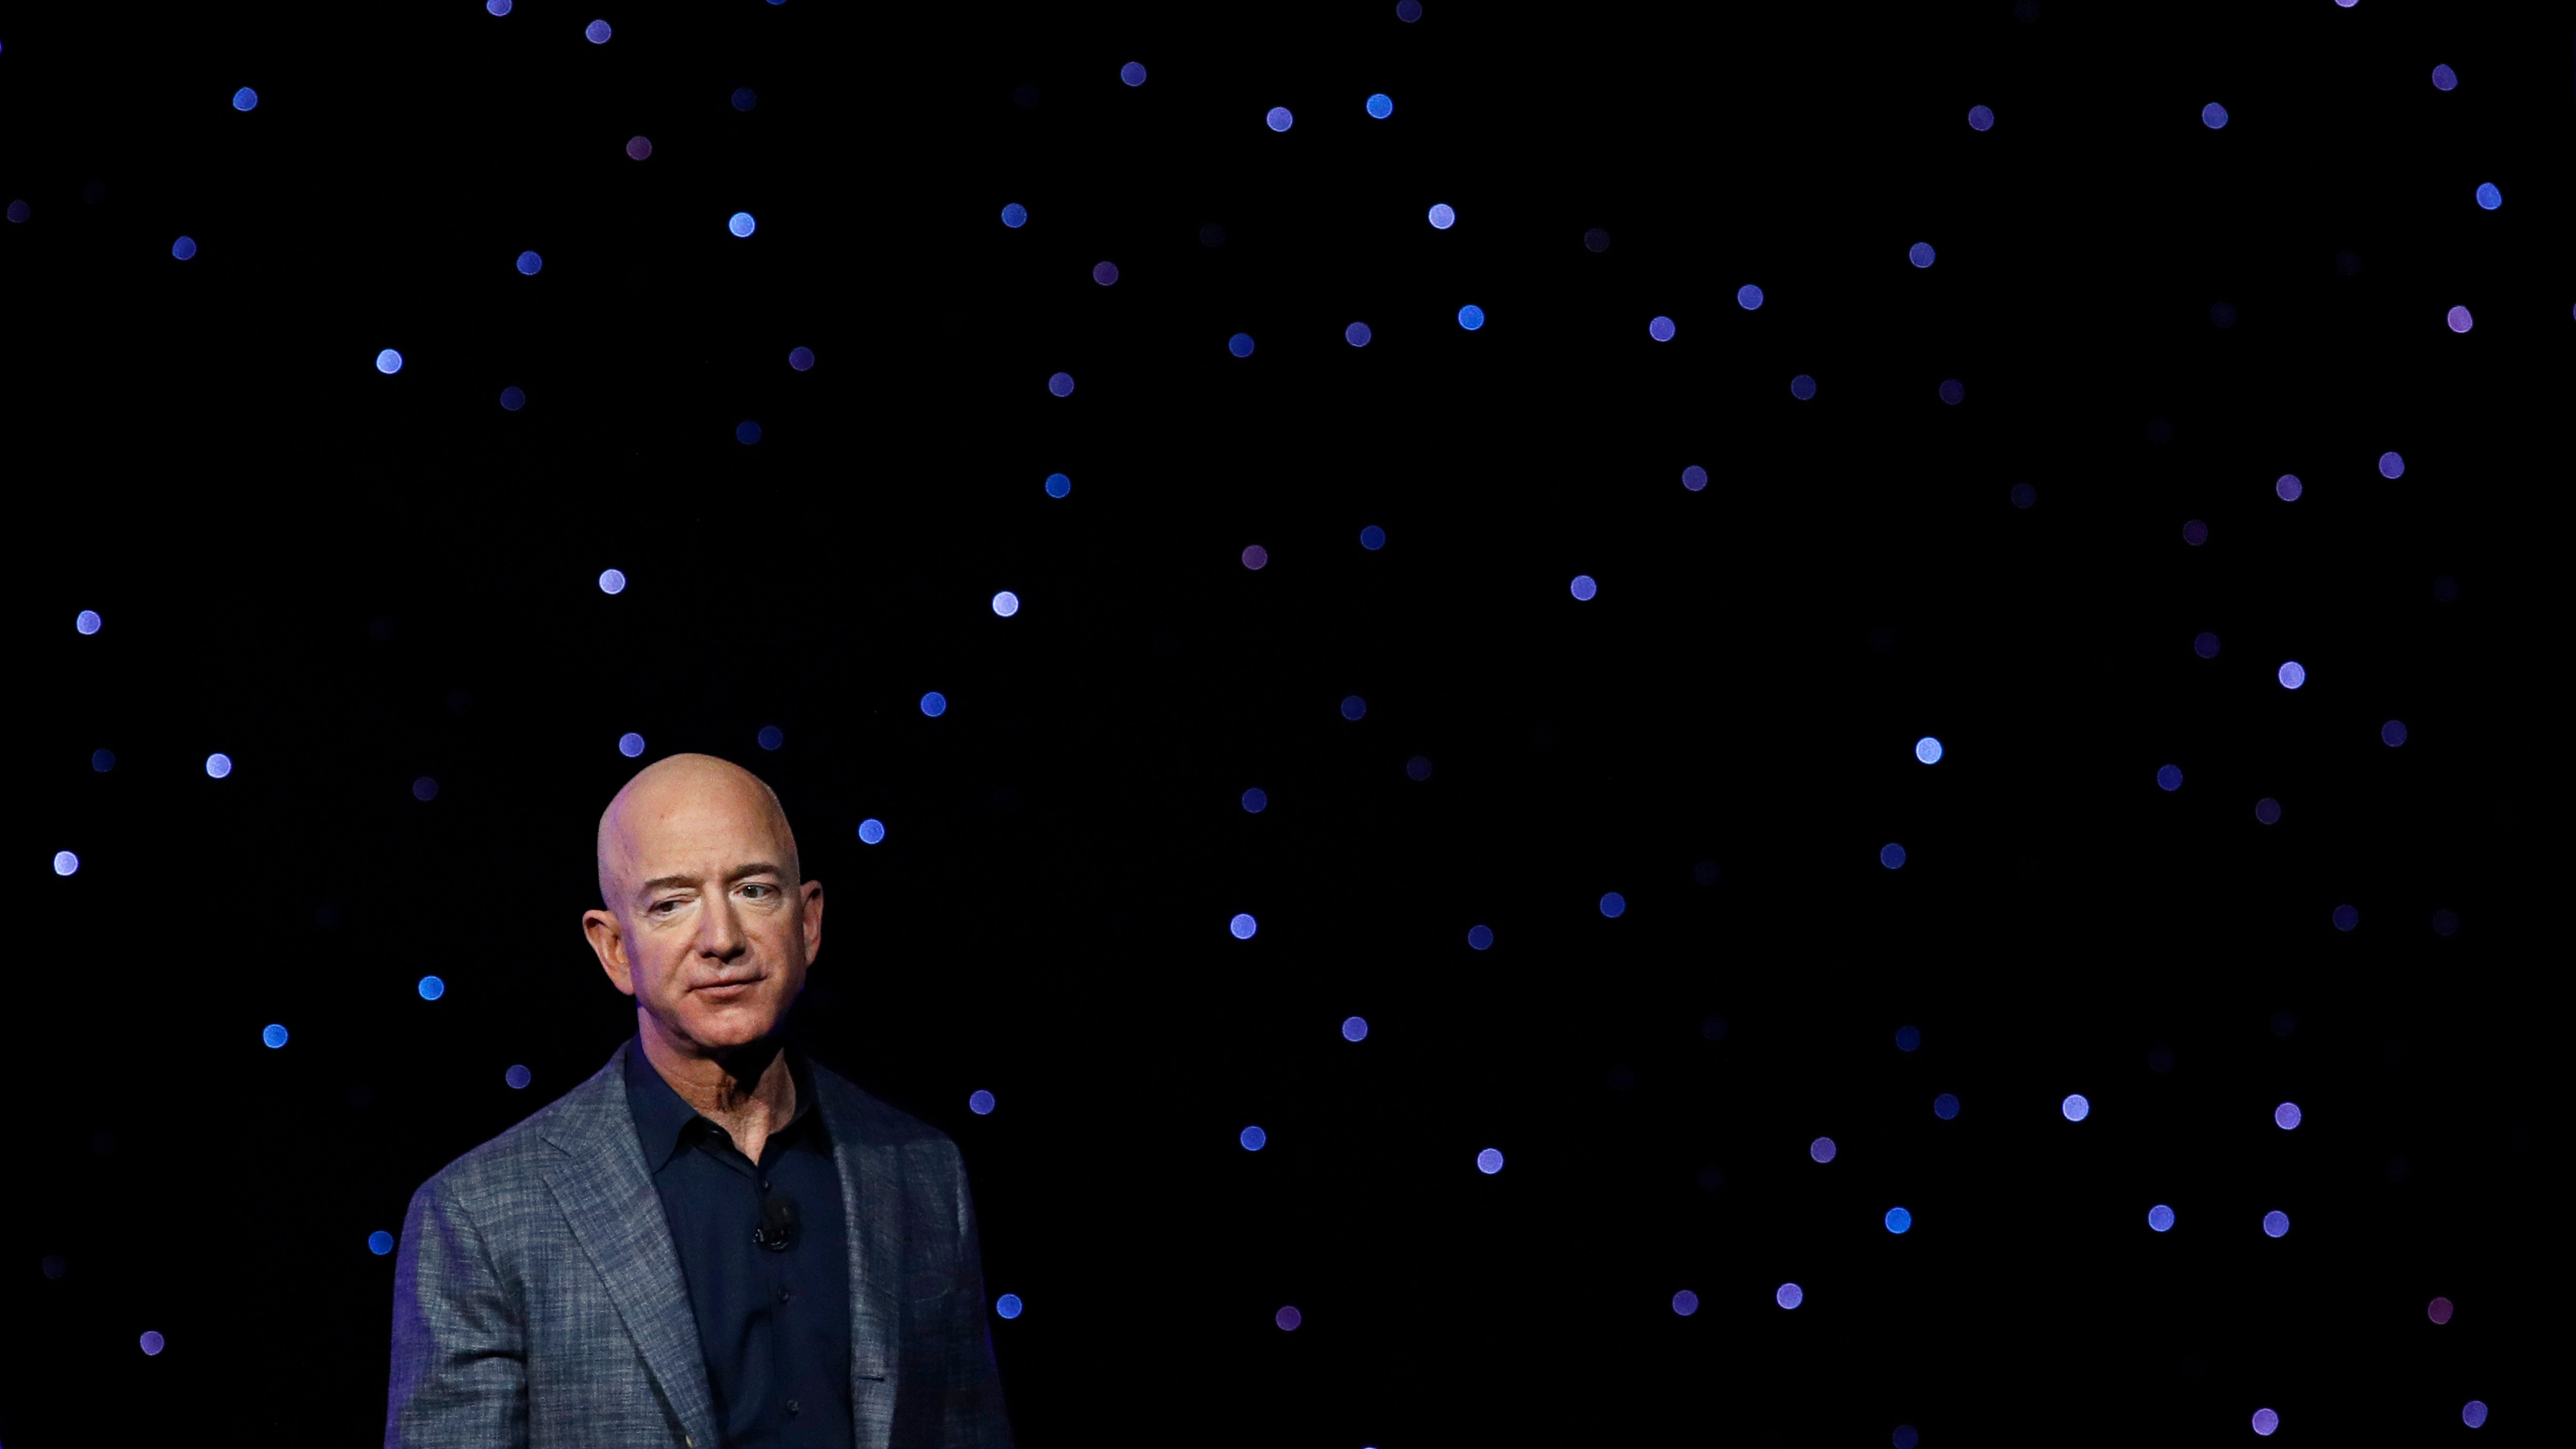 Jeff Bezos Wouldn't Even Come On Stage To Listen To His Employees Who Want Amazon To Address Climate Change